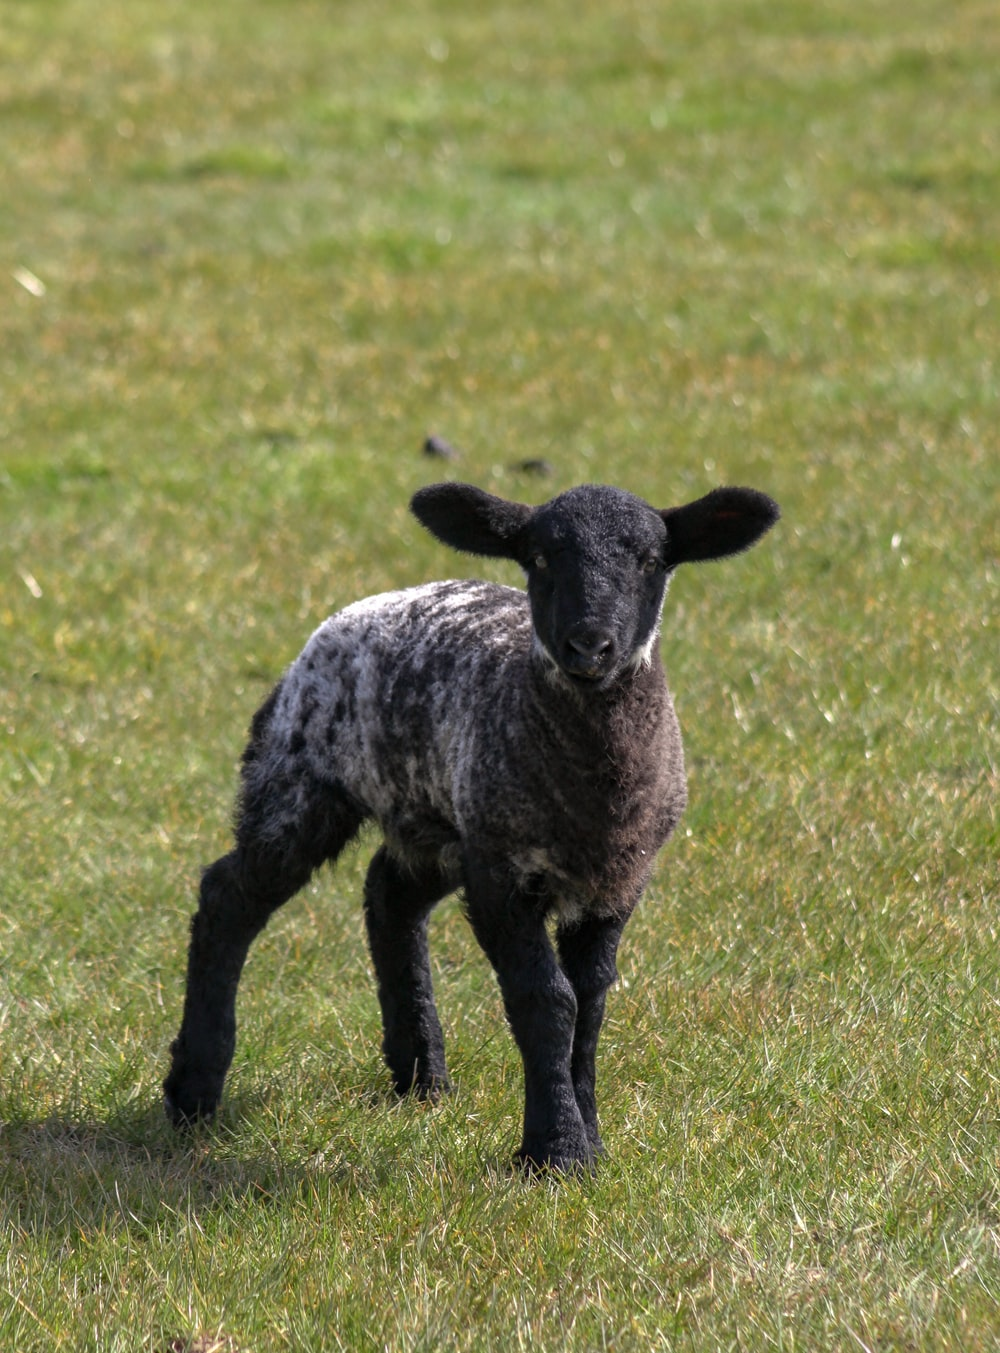 black and white sheep on green grass field during daytime